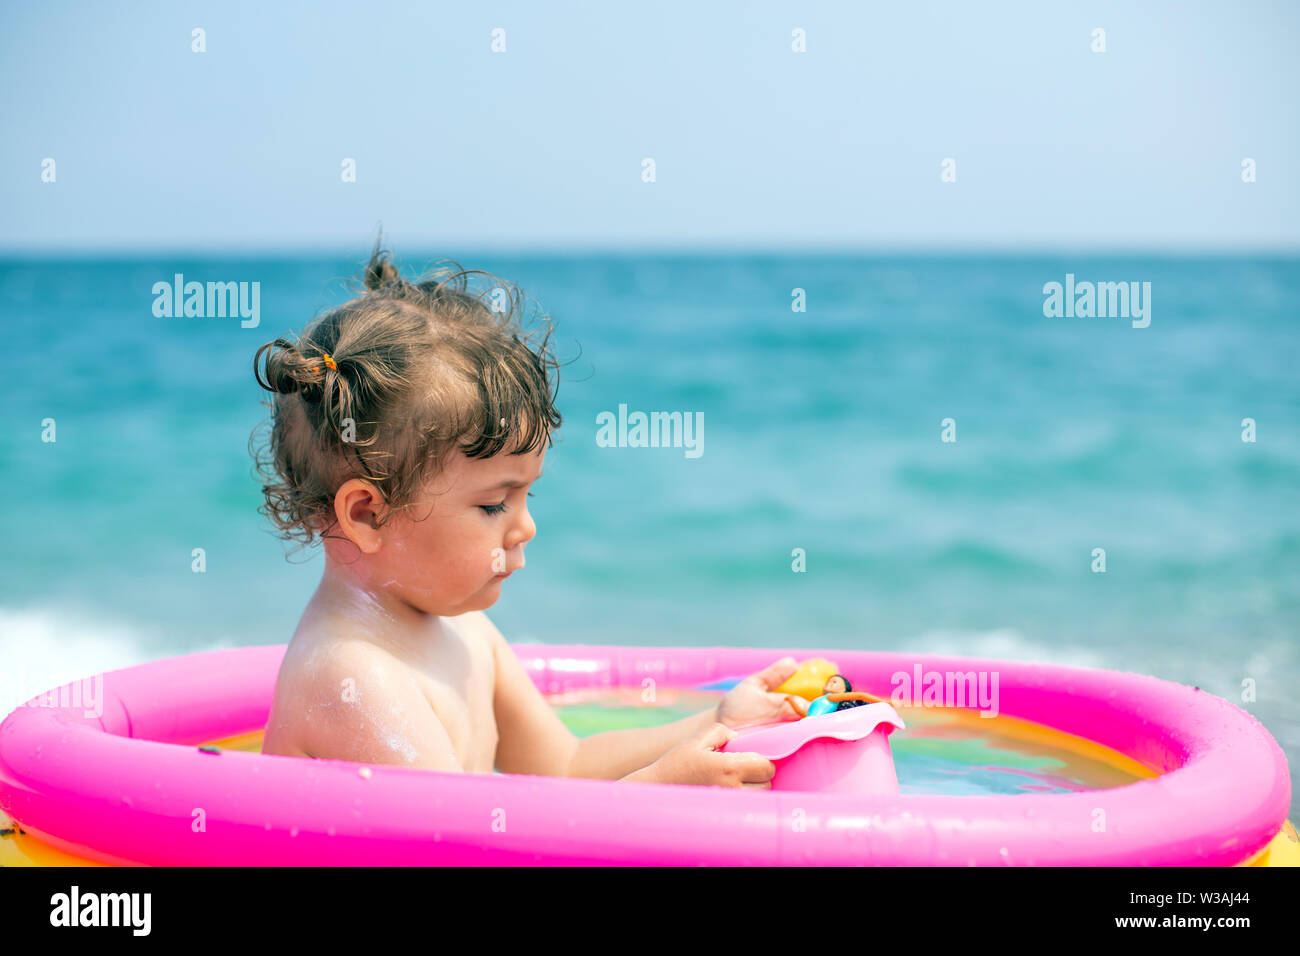 A little girl is playing an inflatable pool. Cute baby in an inflatable pool against the backdrop of the blue sea. Baby-girl bathes her doll - Stock Image